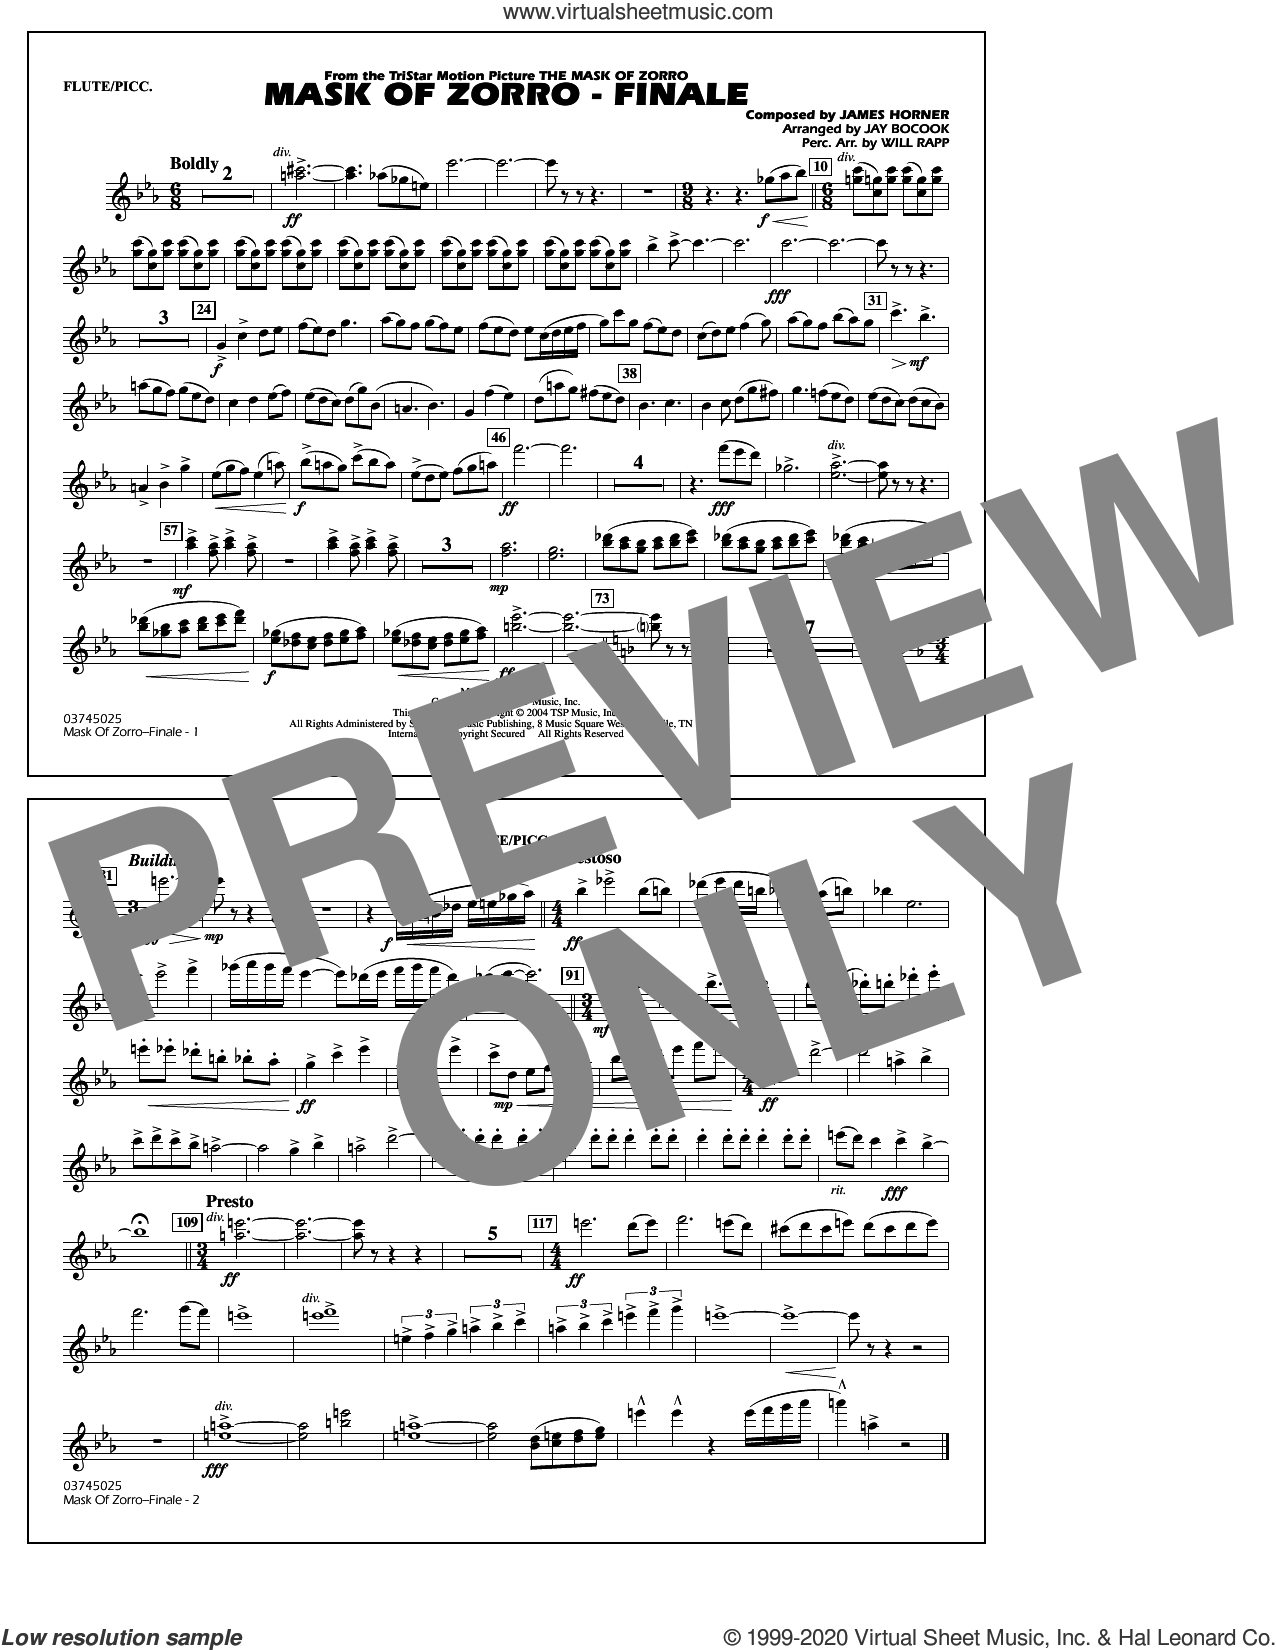 The Mask of Zorro, finale (arr. jay bocook) sheet music for marching band (flute/piccolo) by James Horner, Jay Bocook and Will Rapp, intermediate skill level